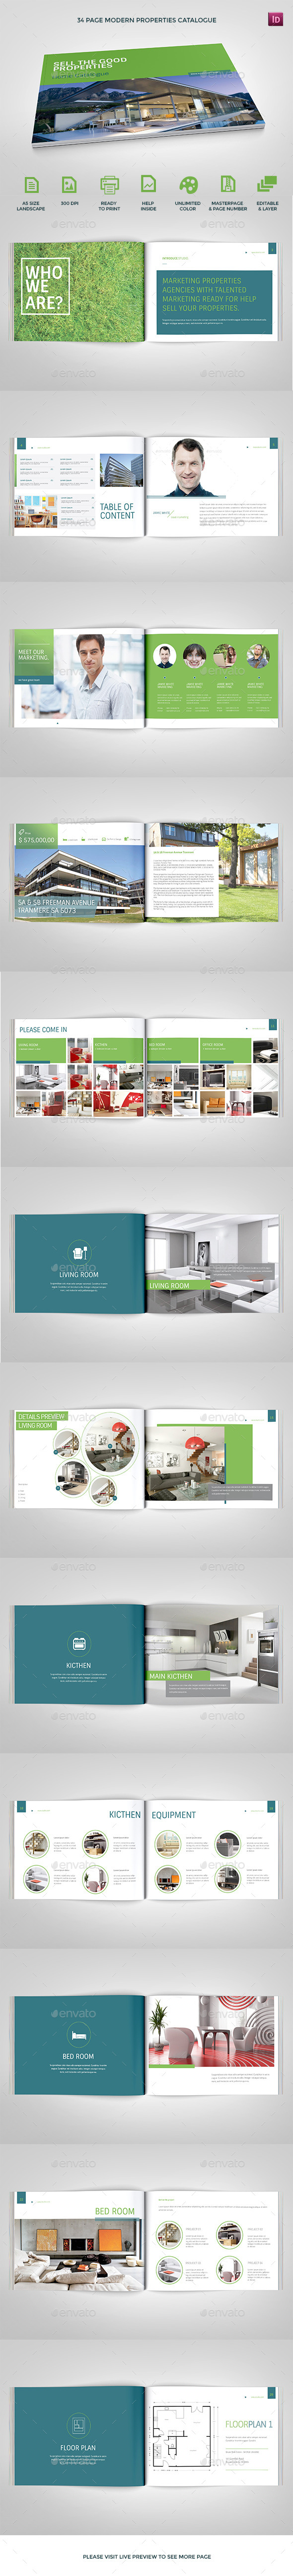 GraphicRiver Modern Properties Catalogs 9626641